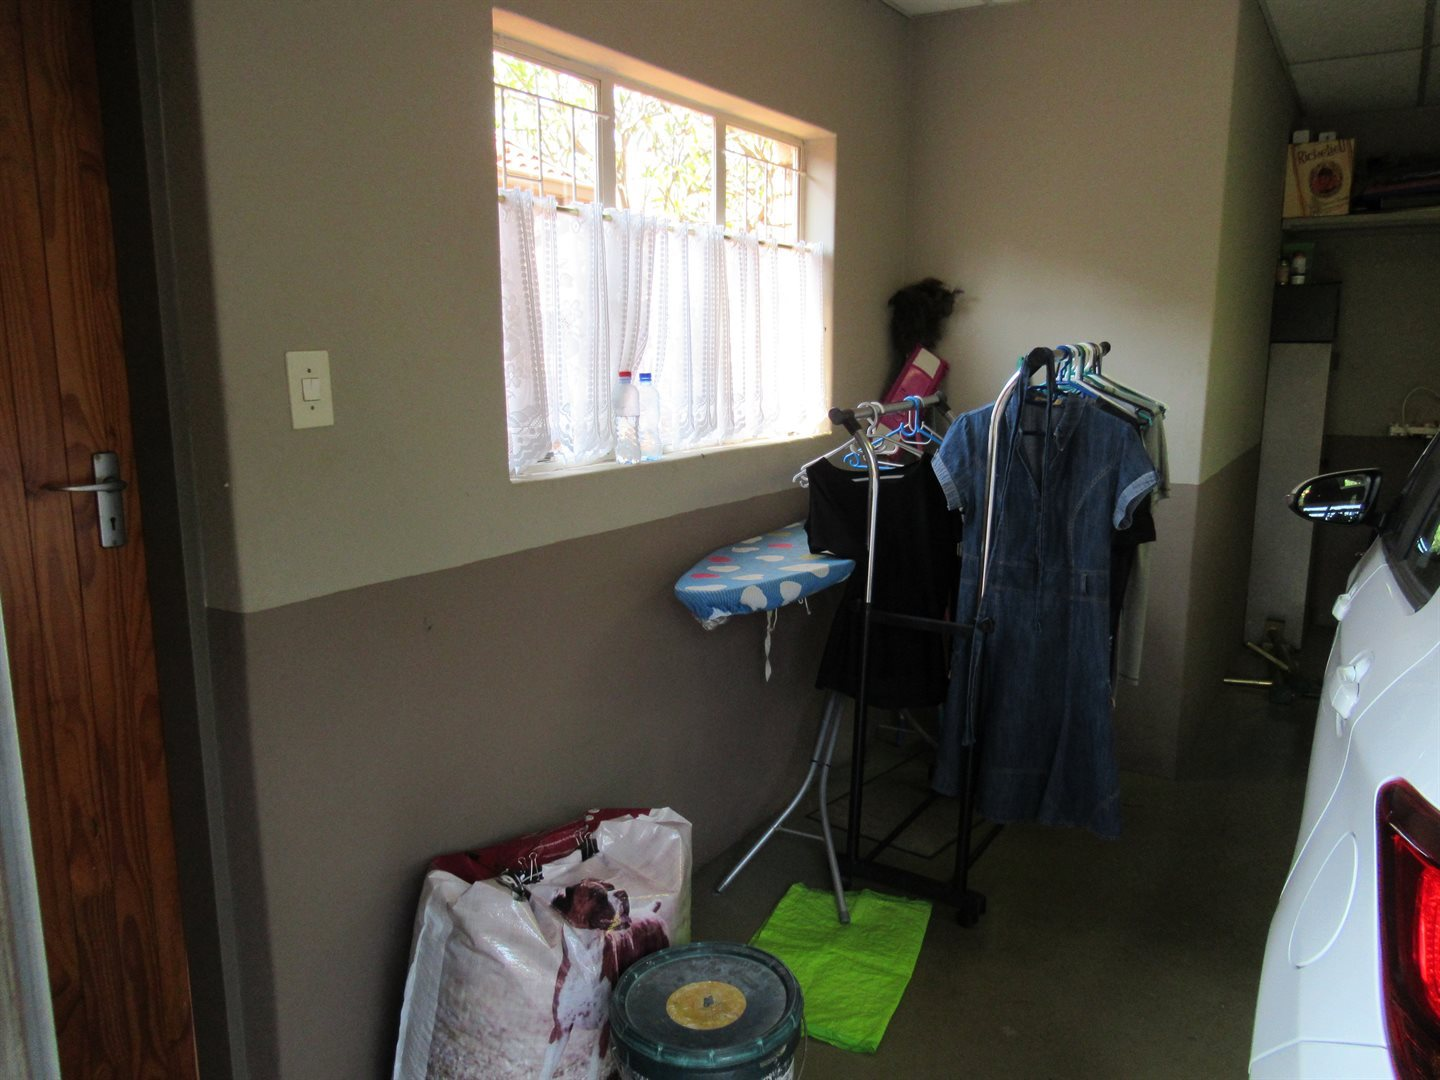 3 Bedroom House for sale in Montana ENT0070945 : photo#14